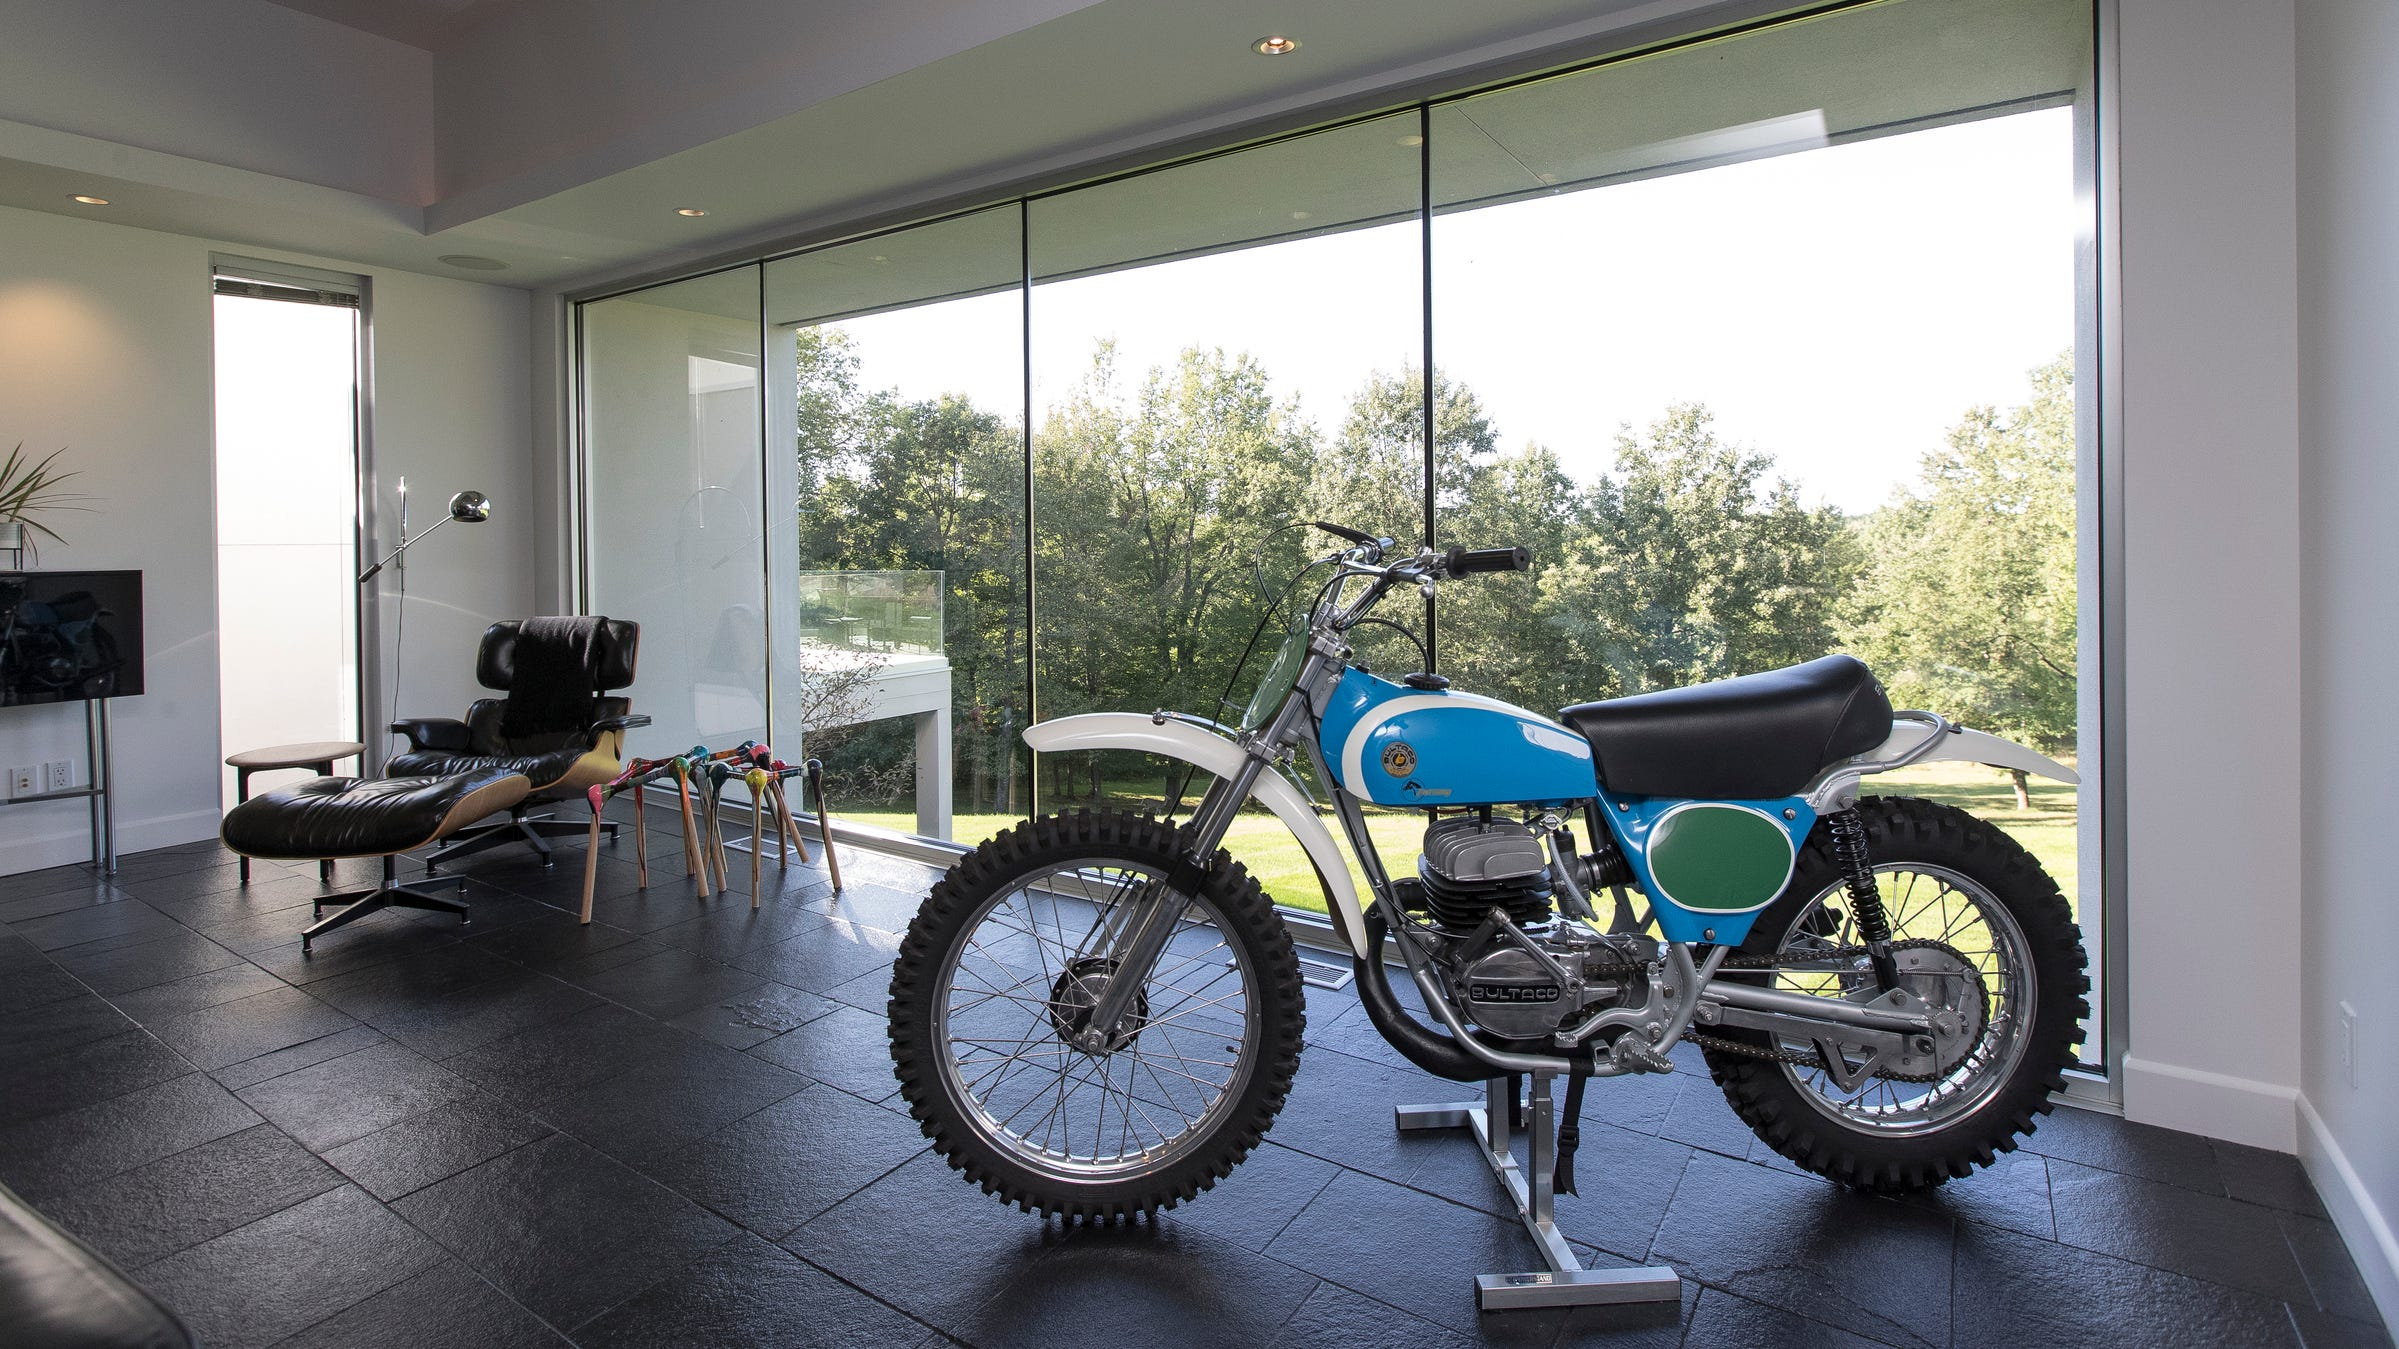 This vintage Bultaco Pursang 250cc is one of three motocross bikes used as objets d'art. This one's in the living room; another is in the front hall and another in the dining-room-turned-pool-room.